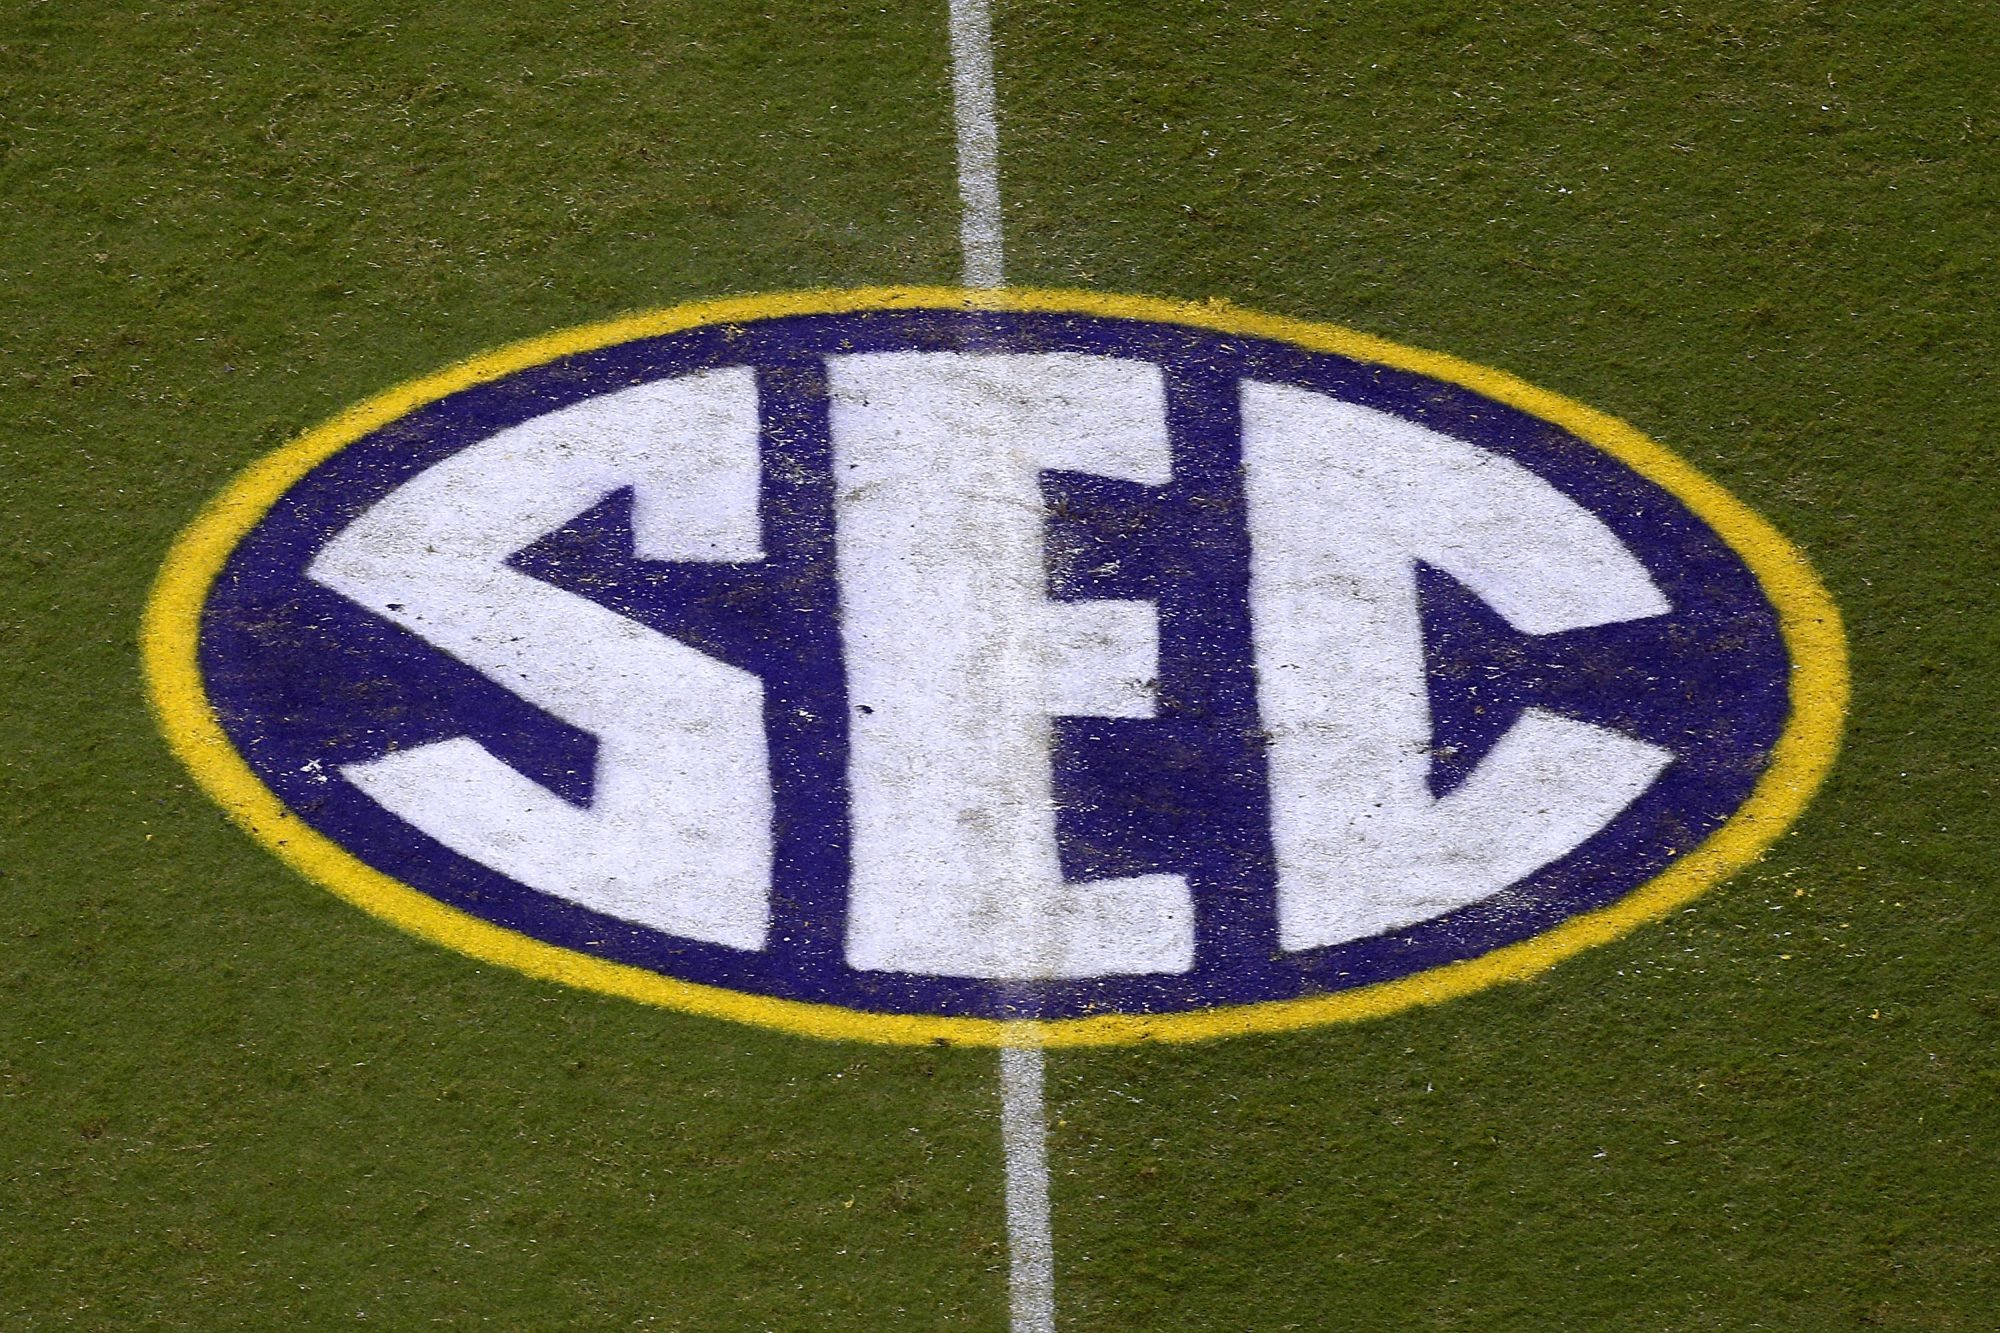 SEC Football Logo on Field